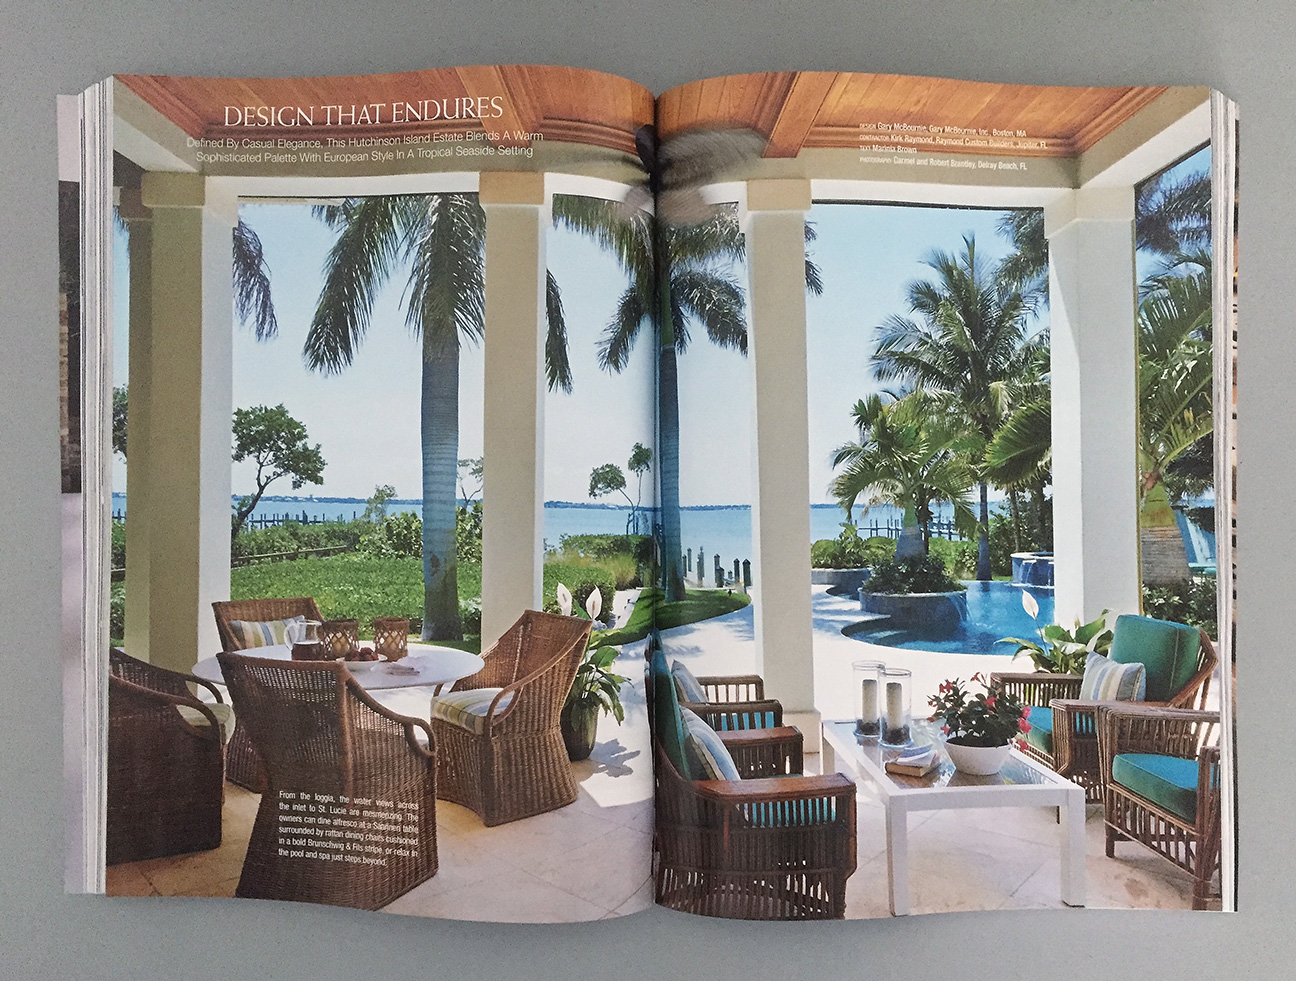 Interior Design Project Published in Florida Design - Brantley ...